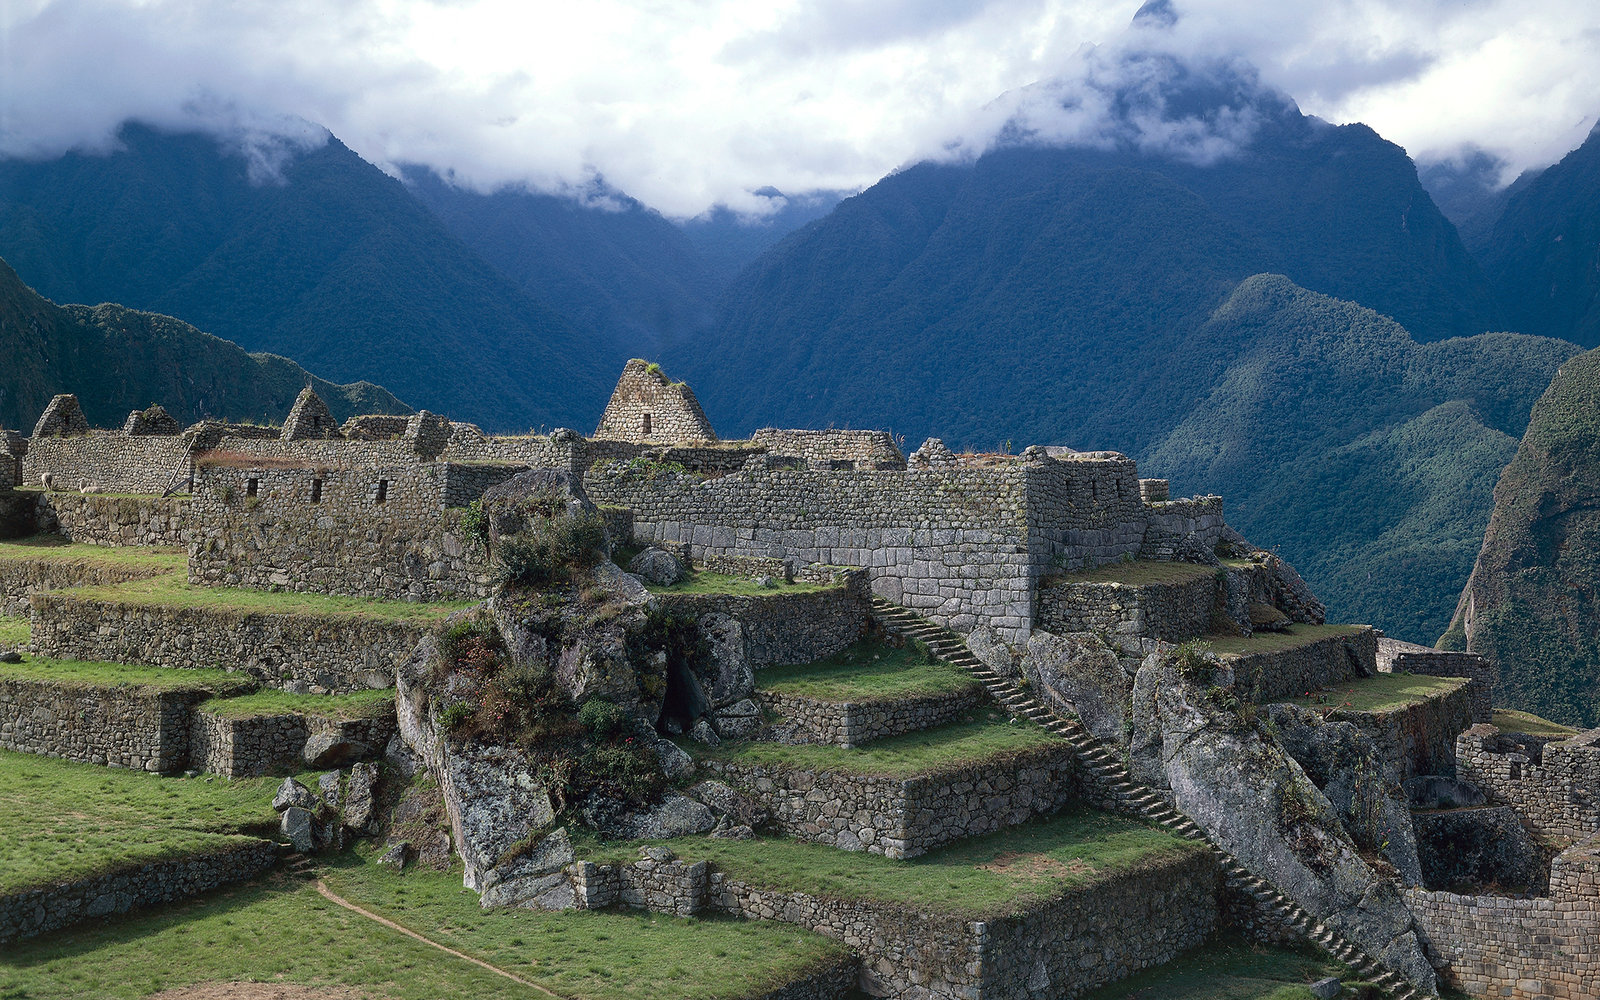 PERU - CIRCA 2003: View of Machu Picchu (Unesco World Heritage List, 1983), Urubamba Valley, Peru. Inca civilisation, 15th century. (Photo by DeAgostini/Getty Images)